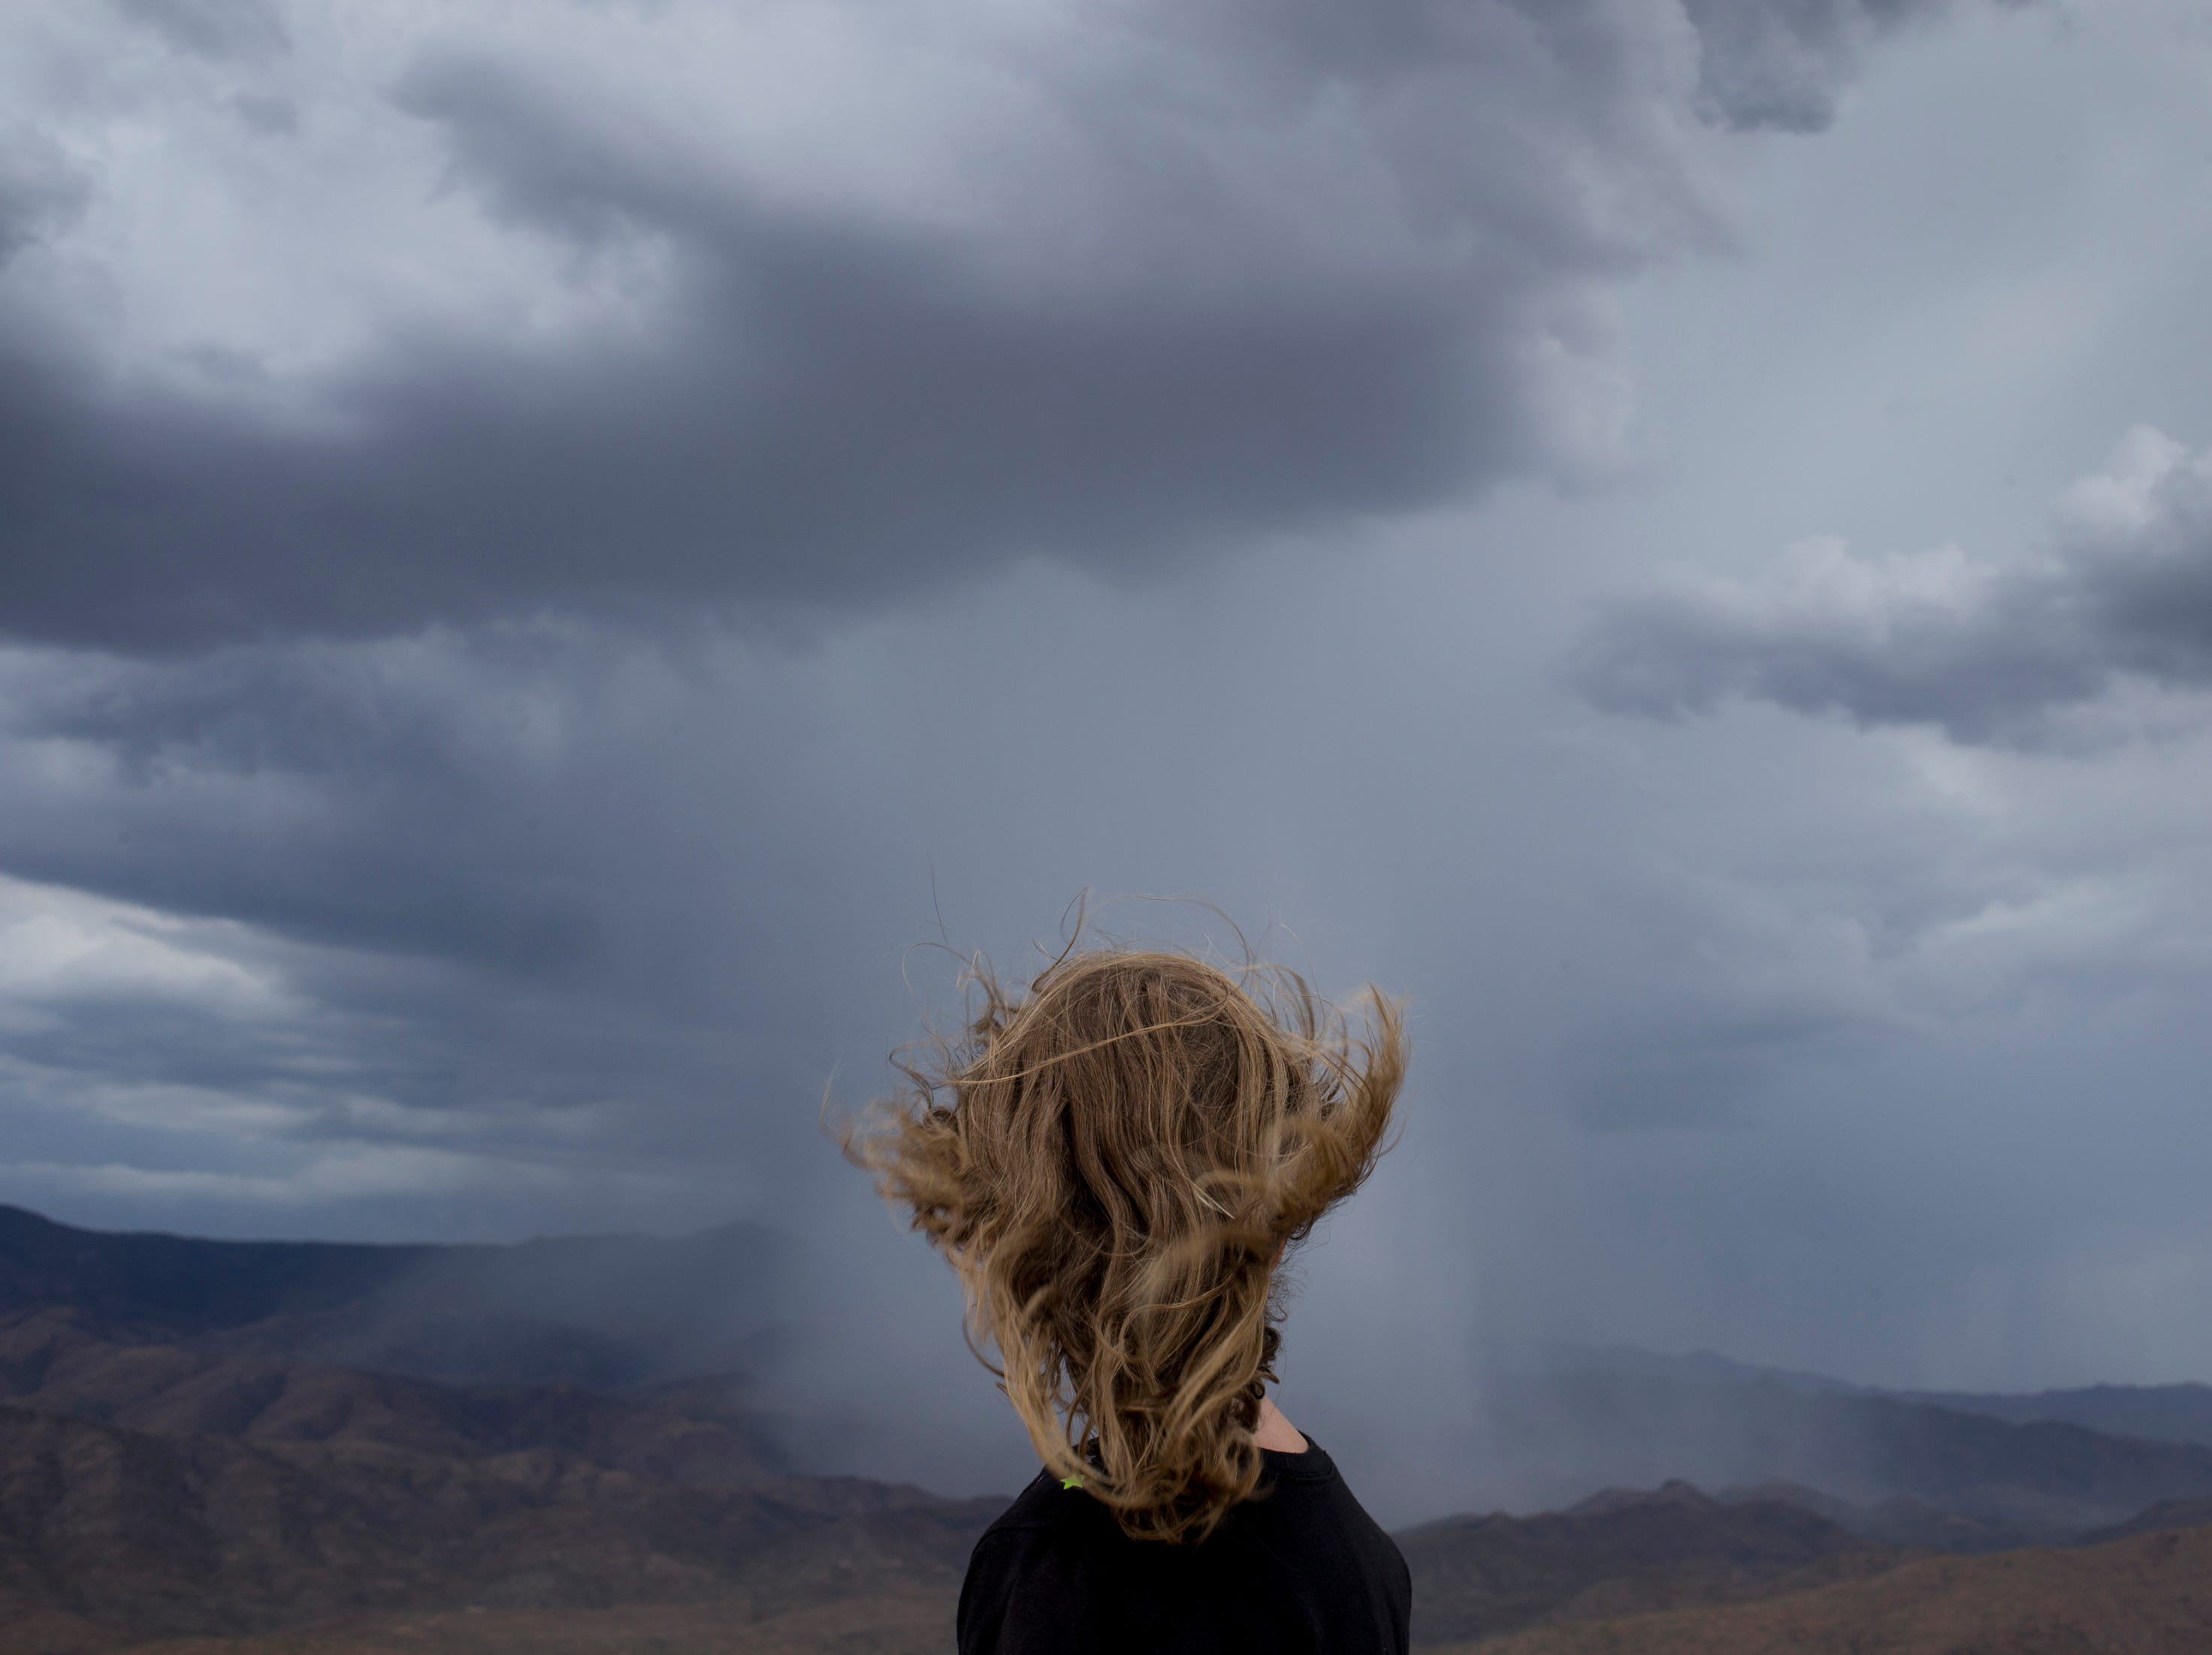 Loralie Rogers watches an approaching storm from Sunset Point Rest Area on I-17 north of Phoenix, Arizona.